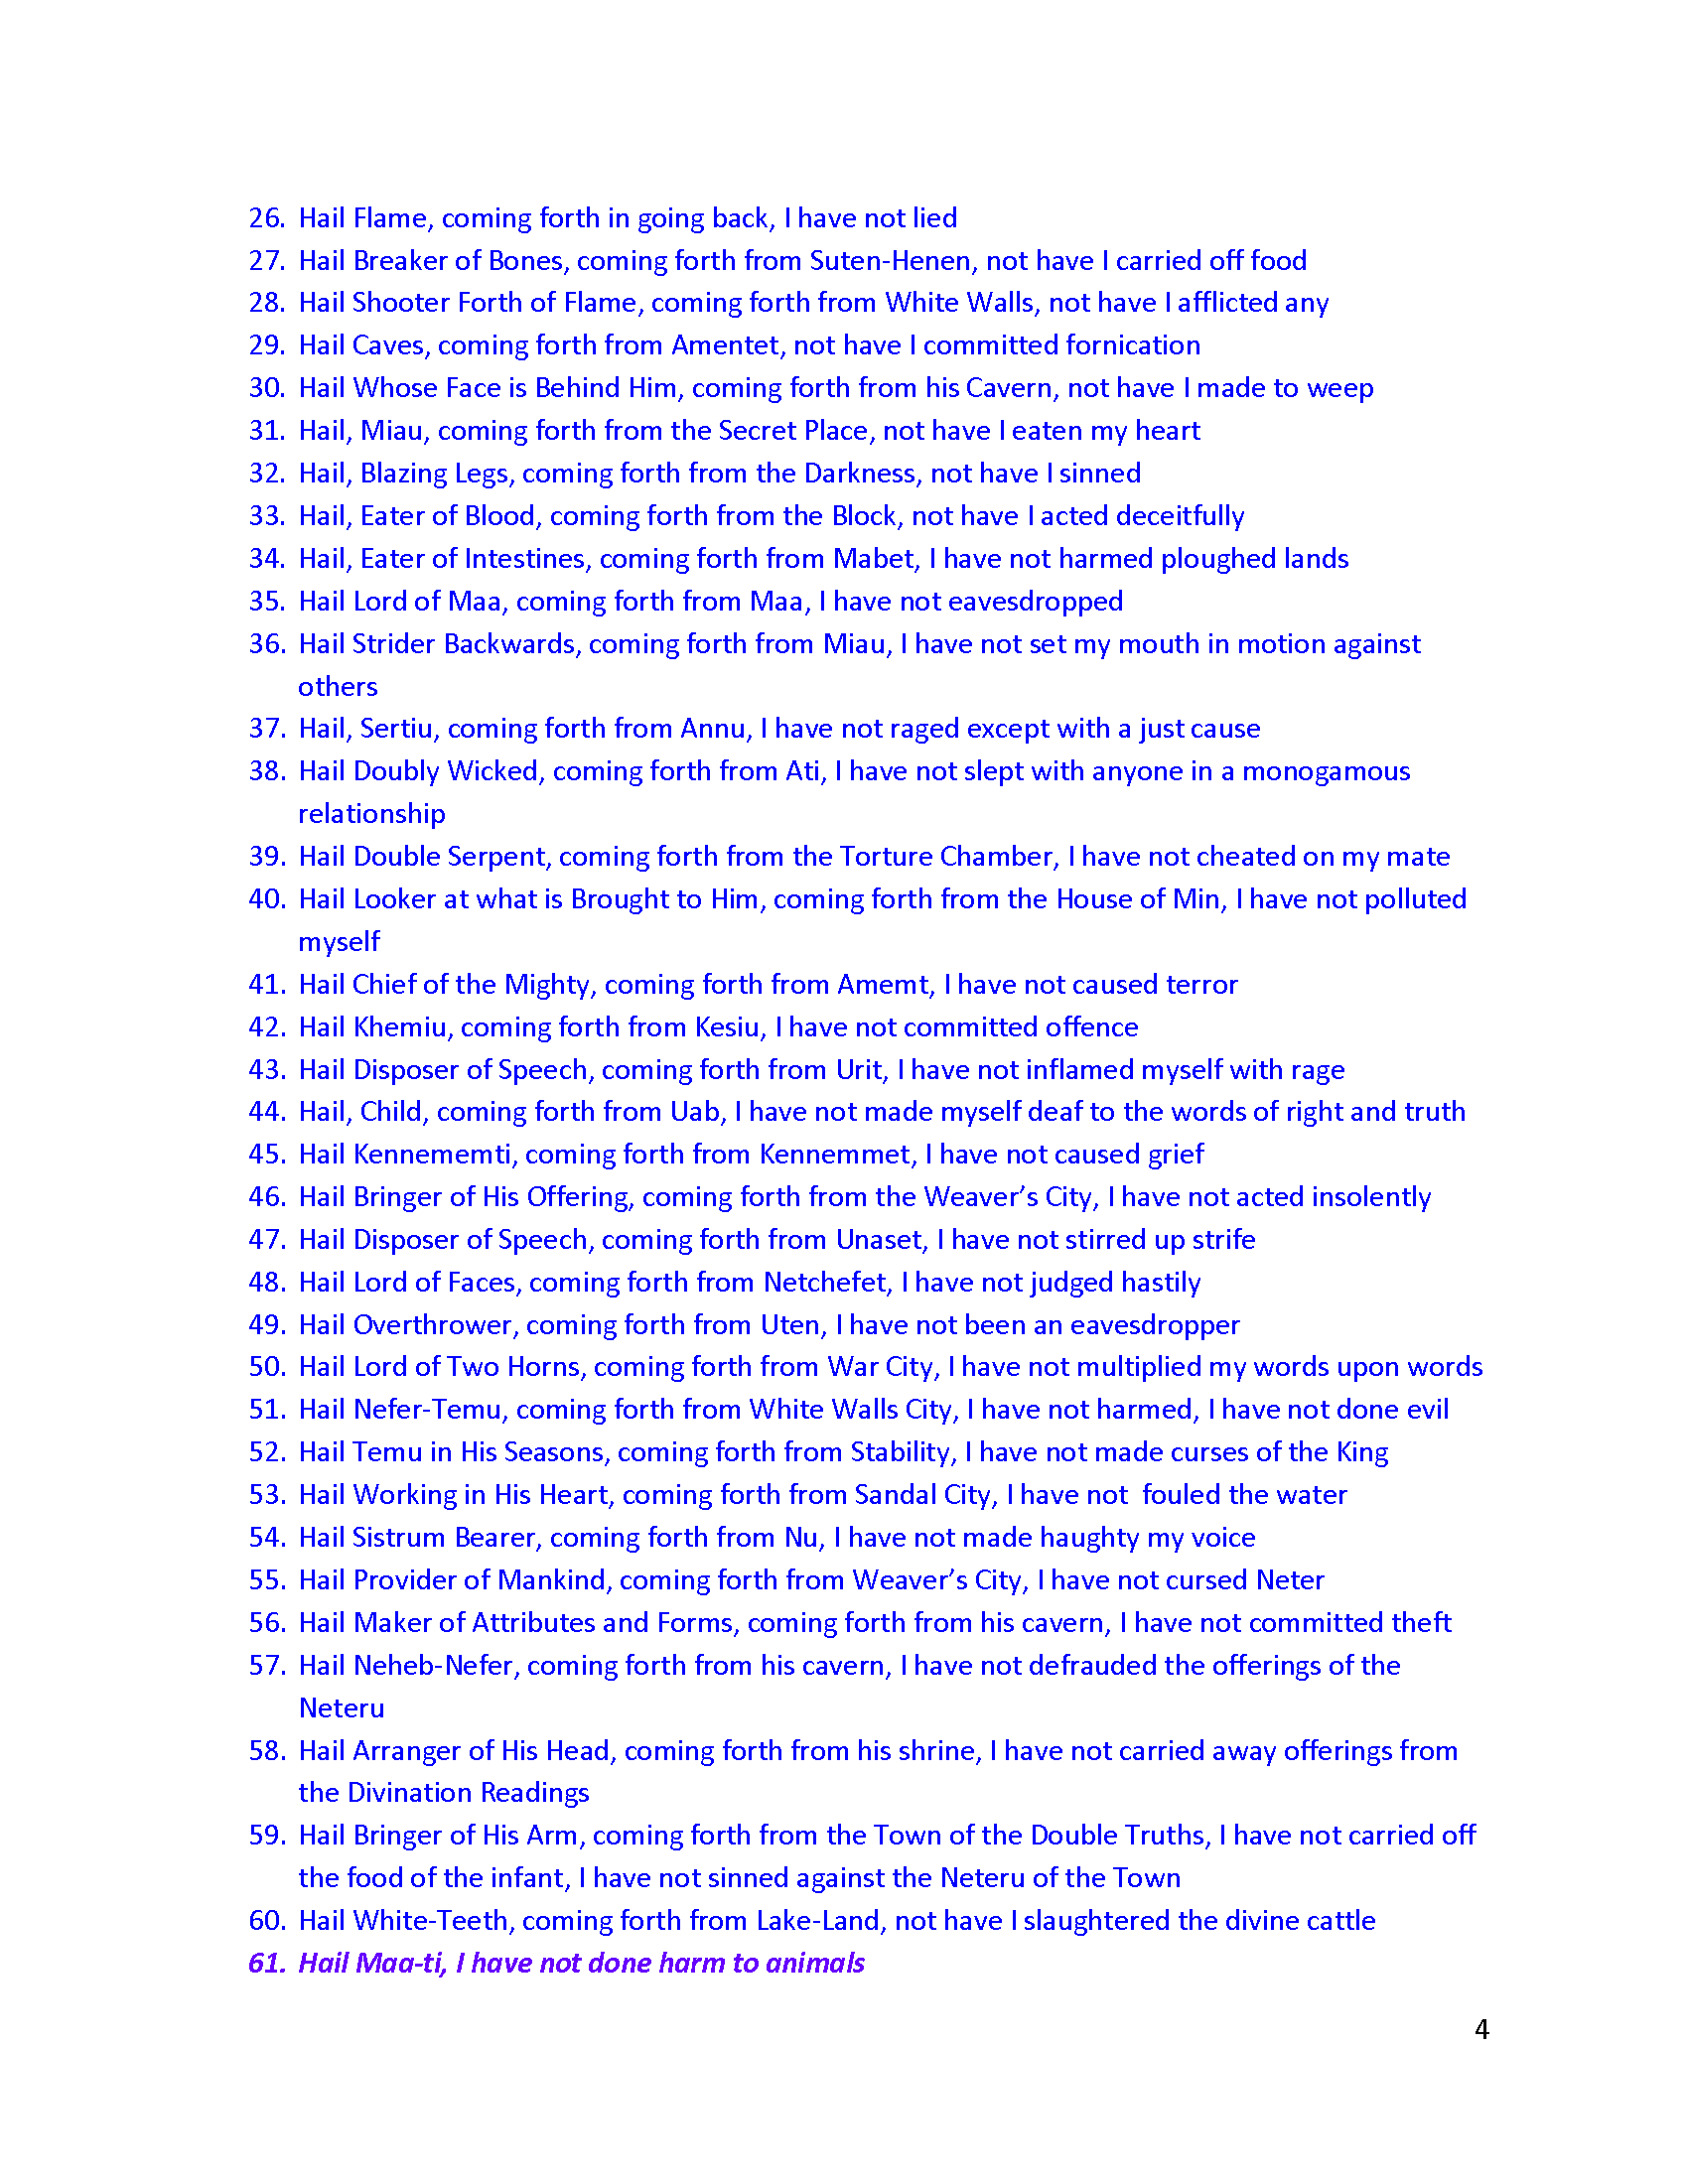 Pages from 88 LAWS  FOR IRON LEVEL INITIATES_Page_4.png